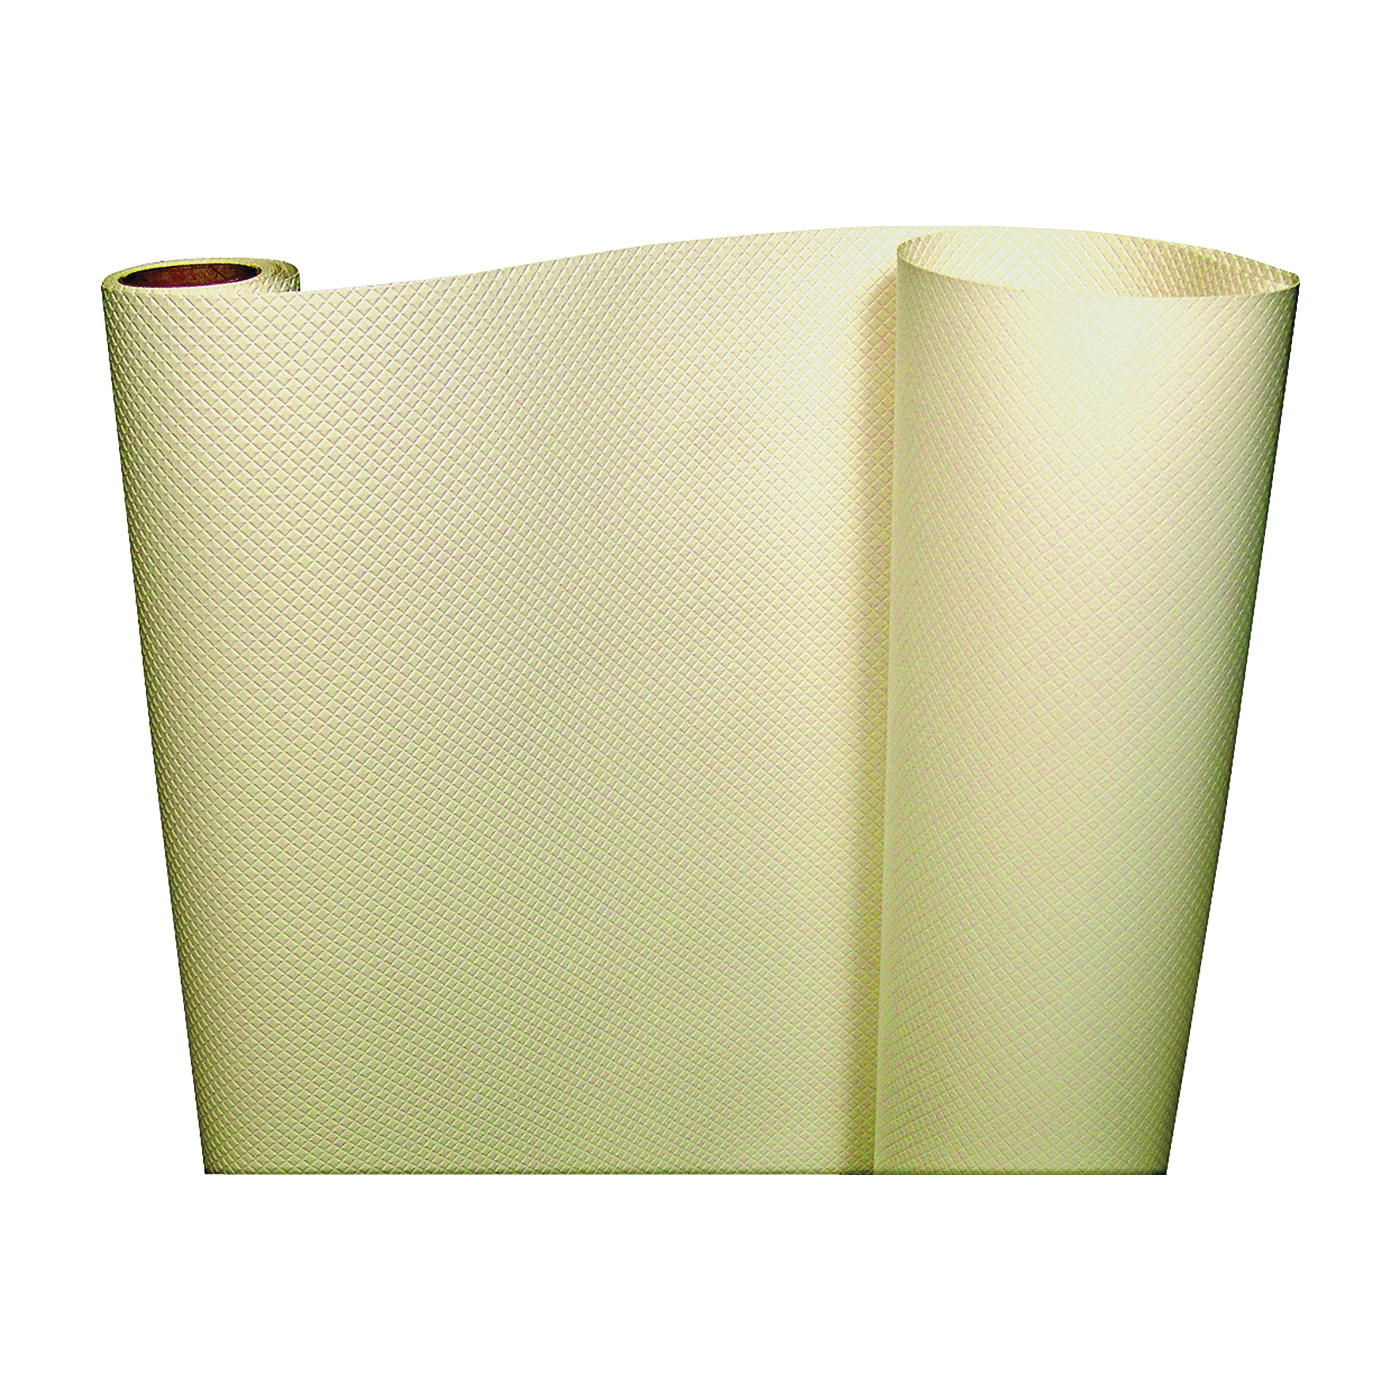 Picture of Con-Tact 05F-C5T22-06 Embossed Shelf Liner, 5 ft L, 20 in W, Vinyl, Almond